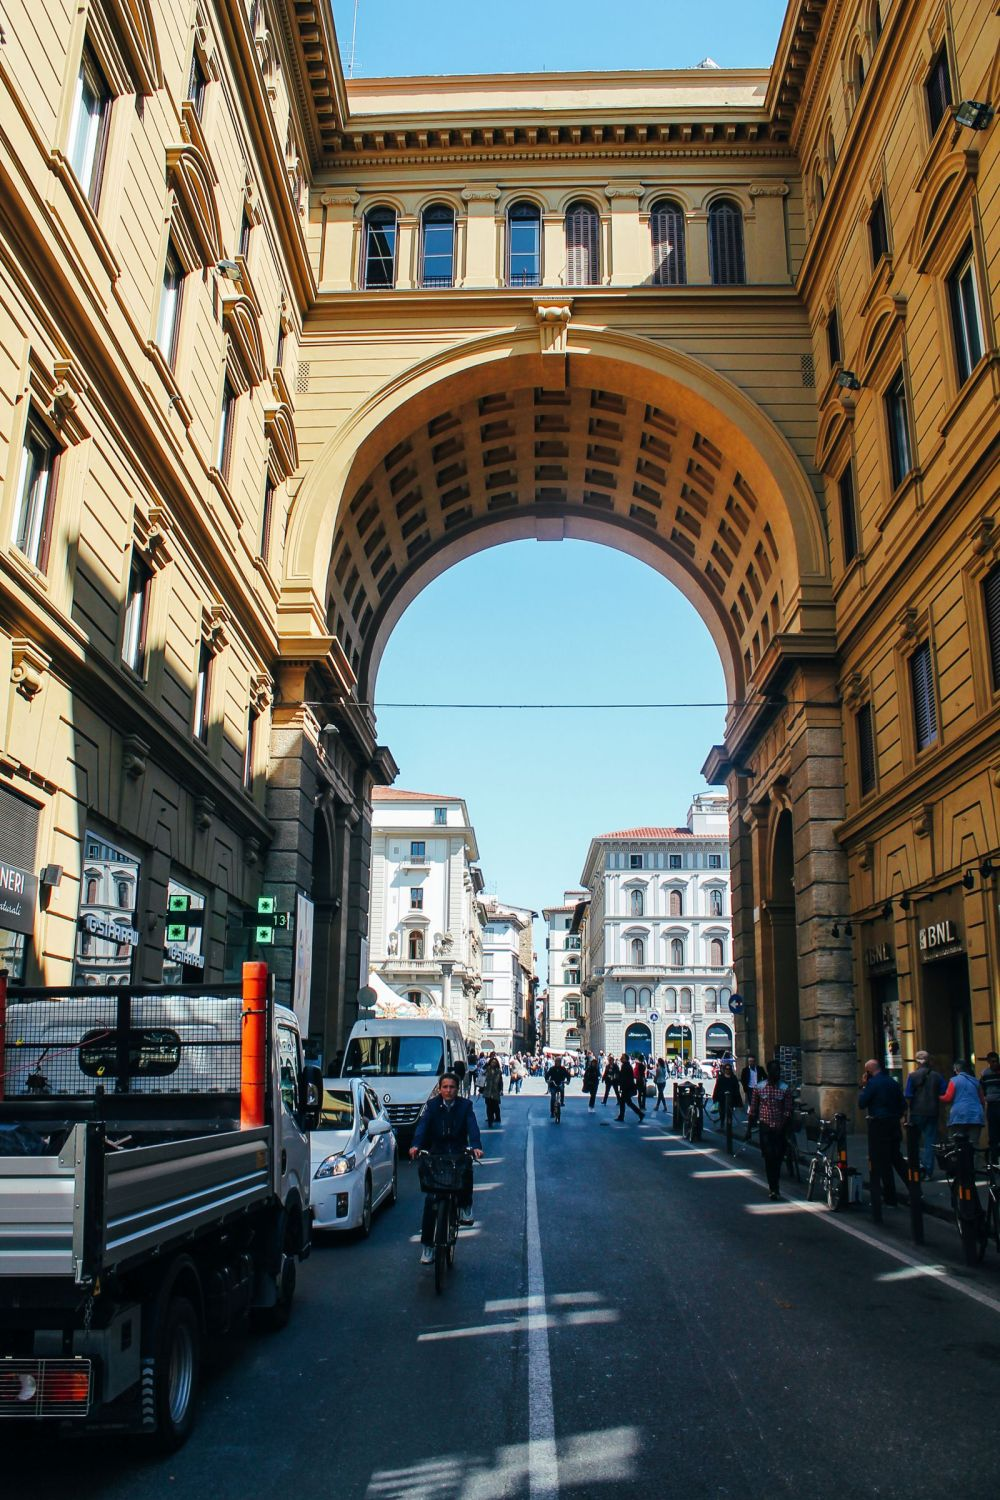 The Sights Of Florence, Italy... A Photo Diary [Part 1] (3)